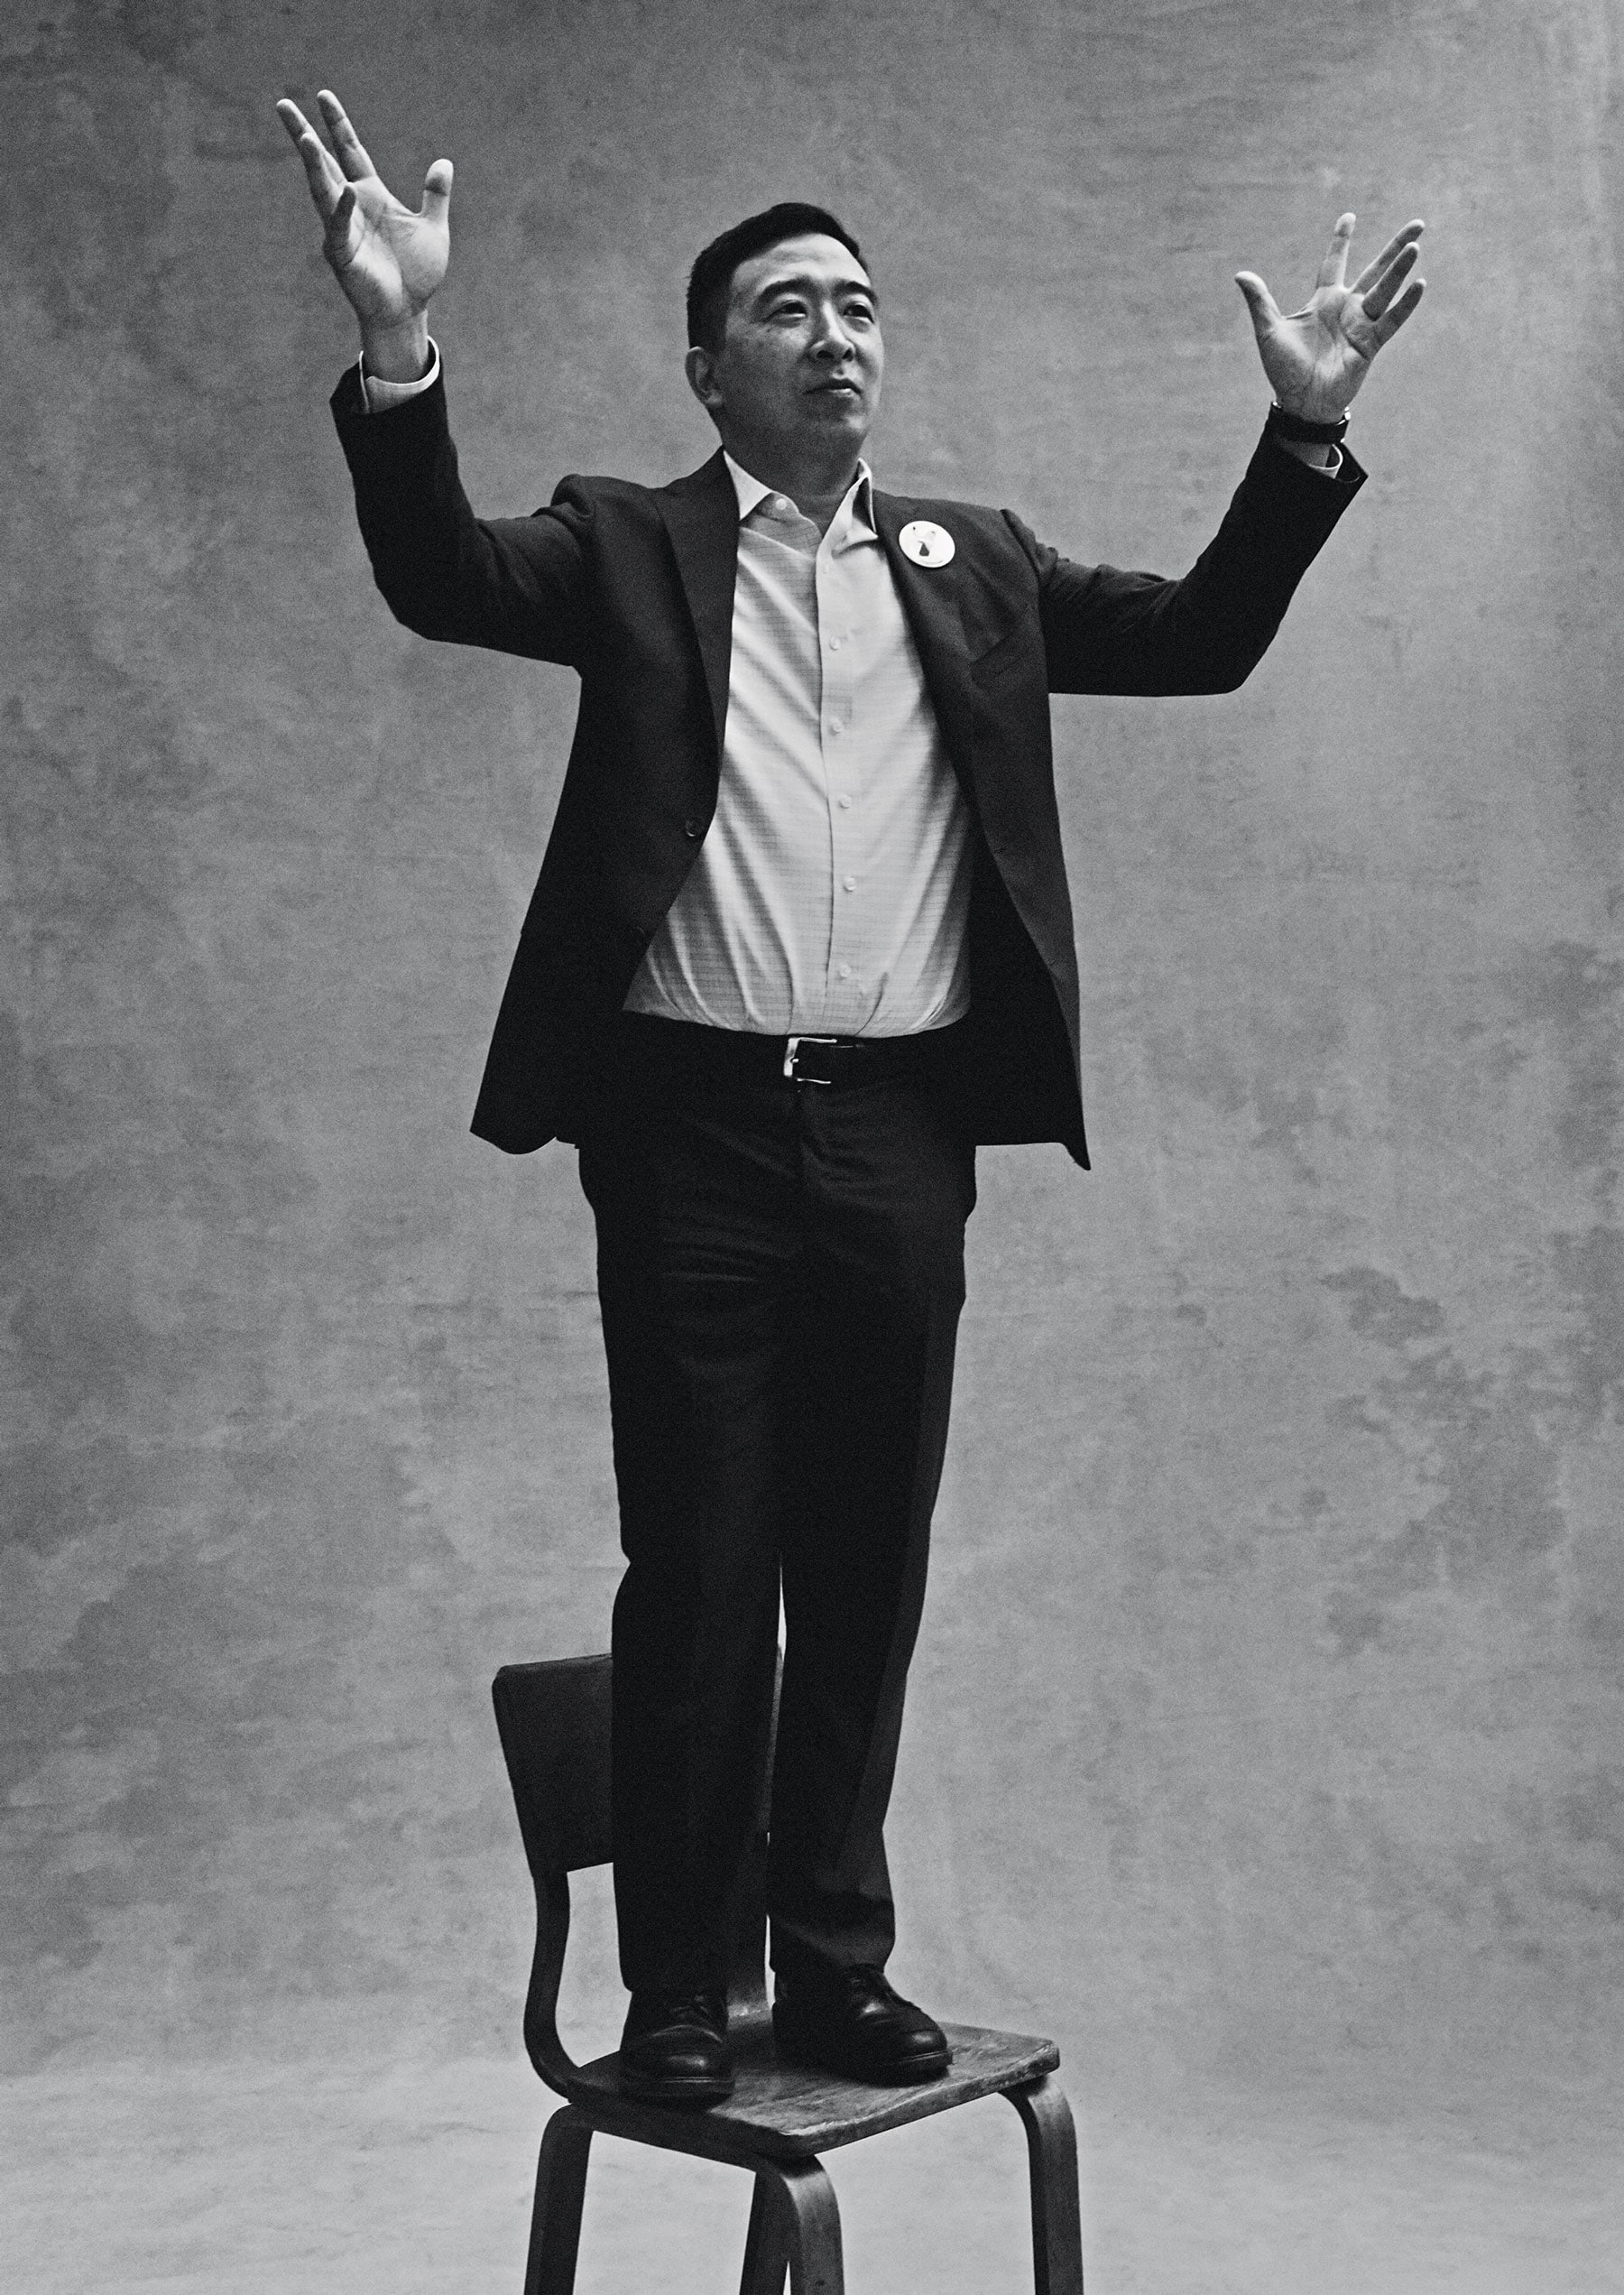 andrew-yang standing on chair